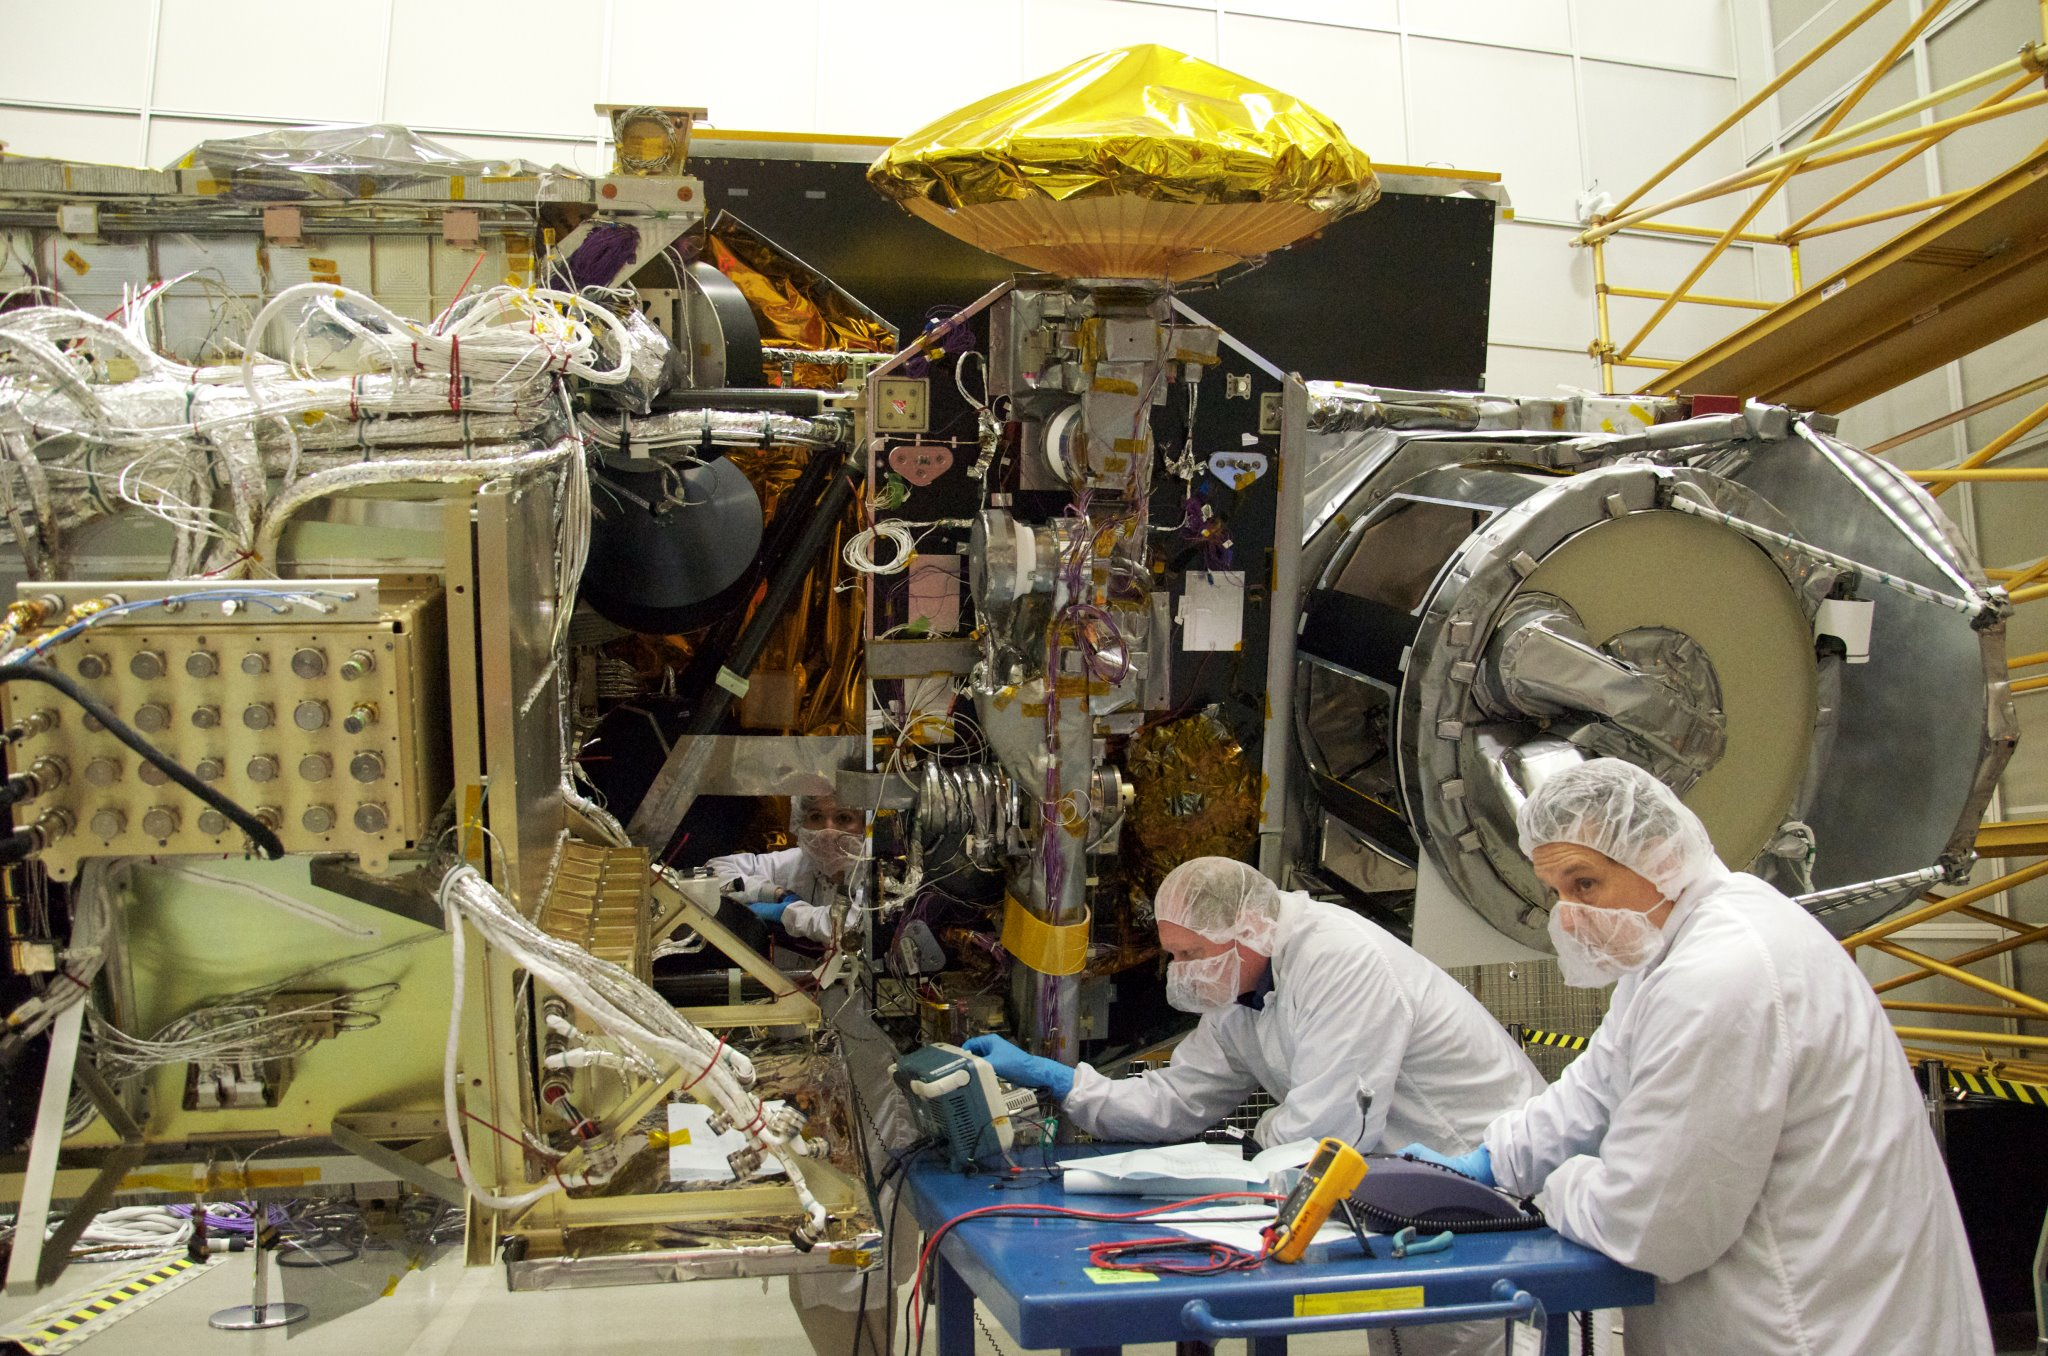 NASA engineers at work building the GPM Core Observatory